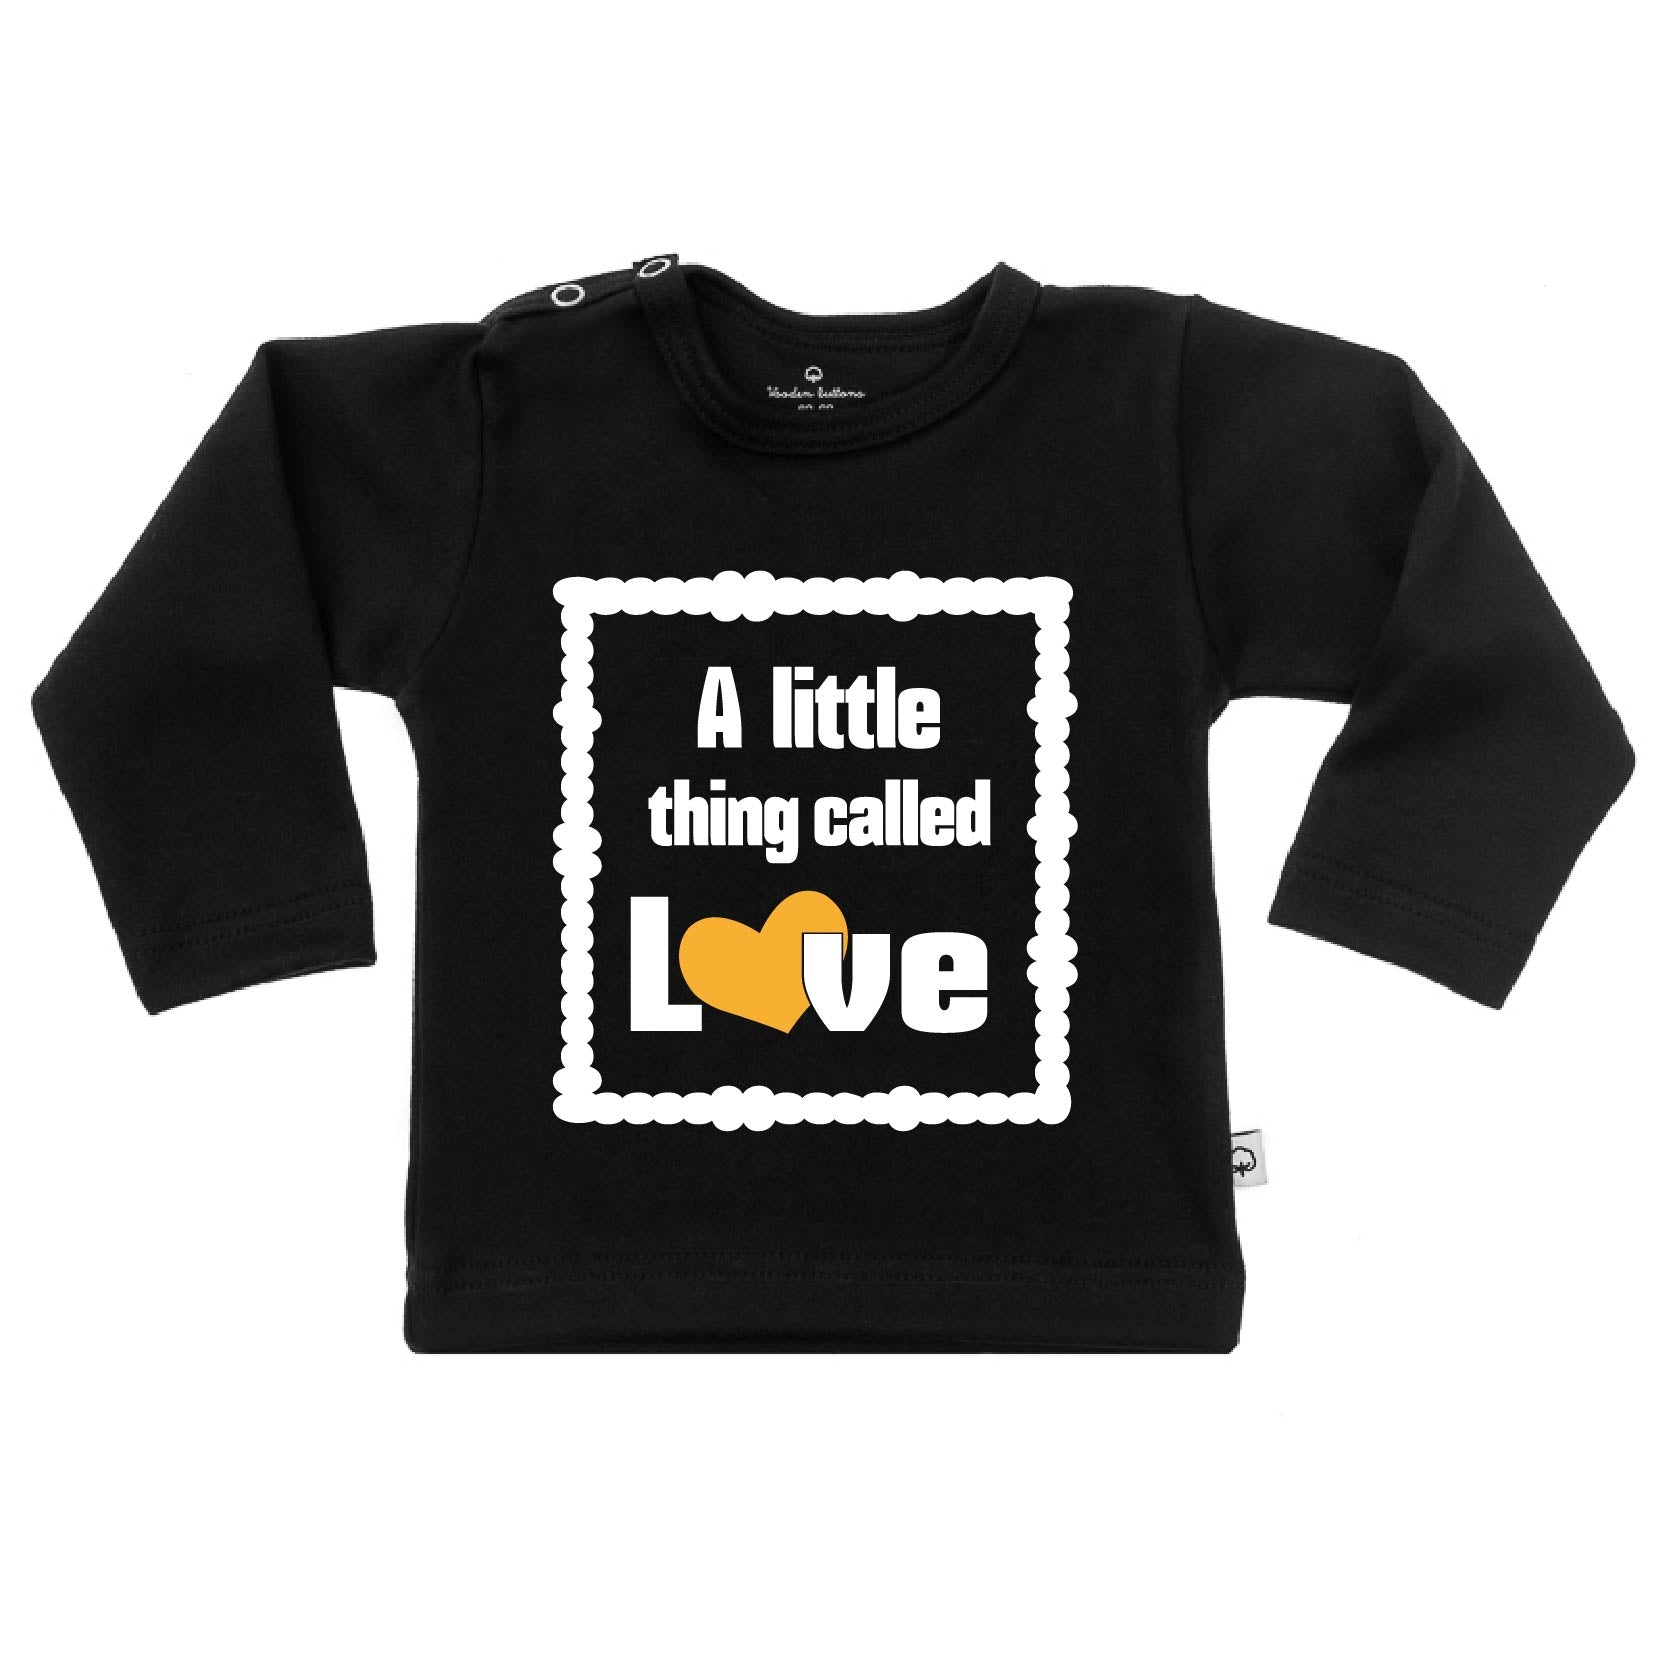 T-Shirt A little thing called love